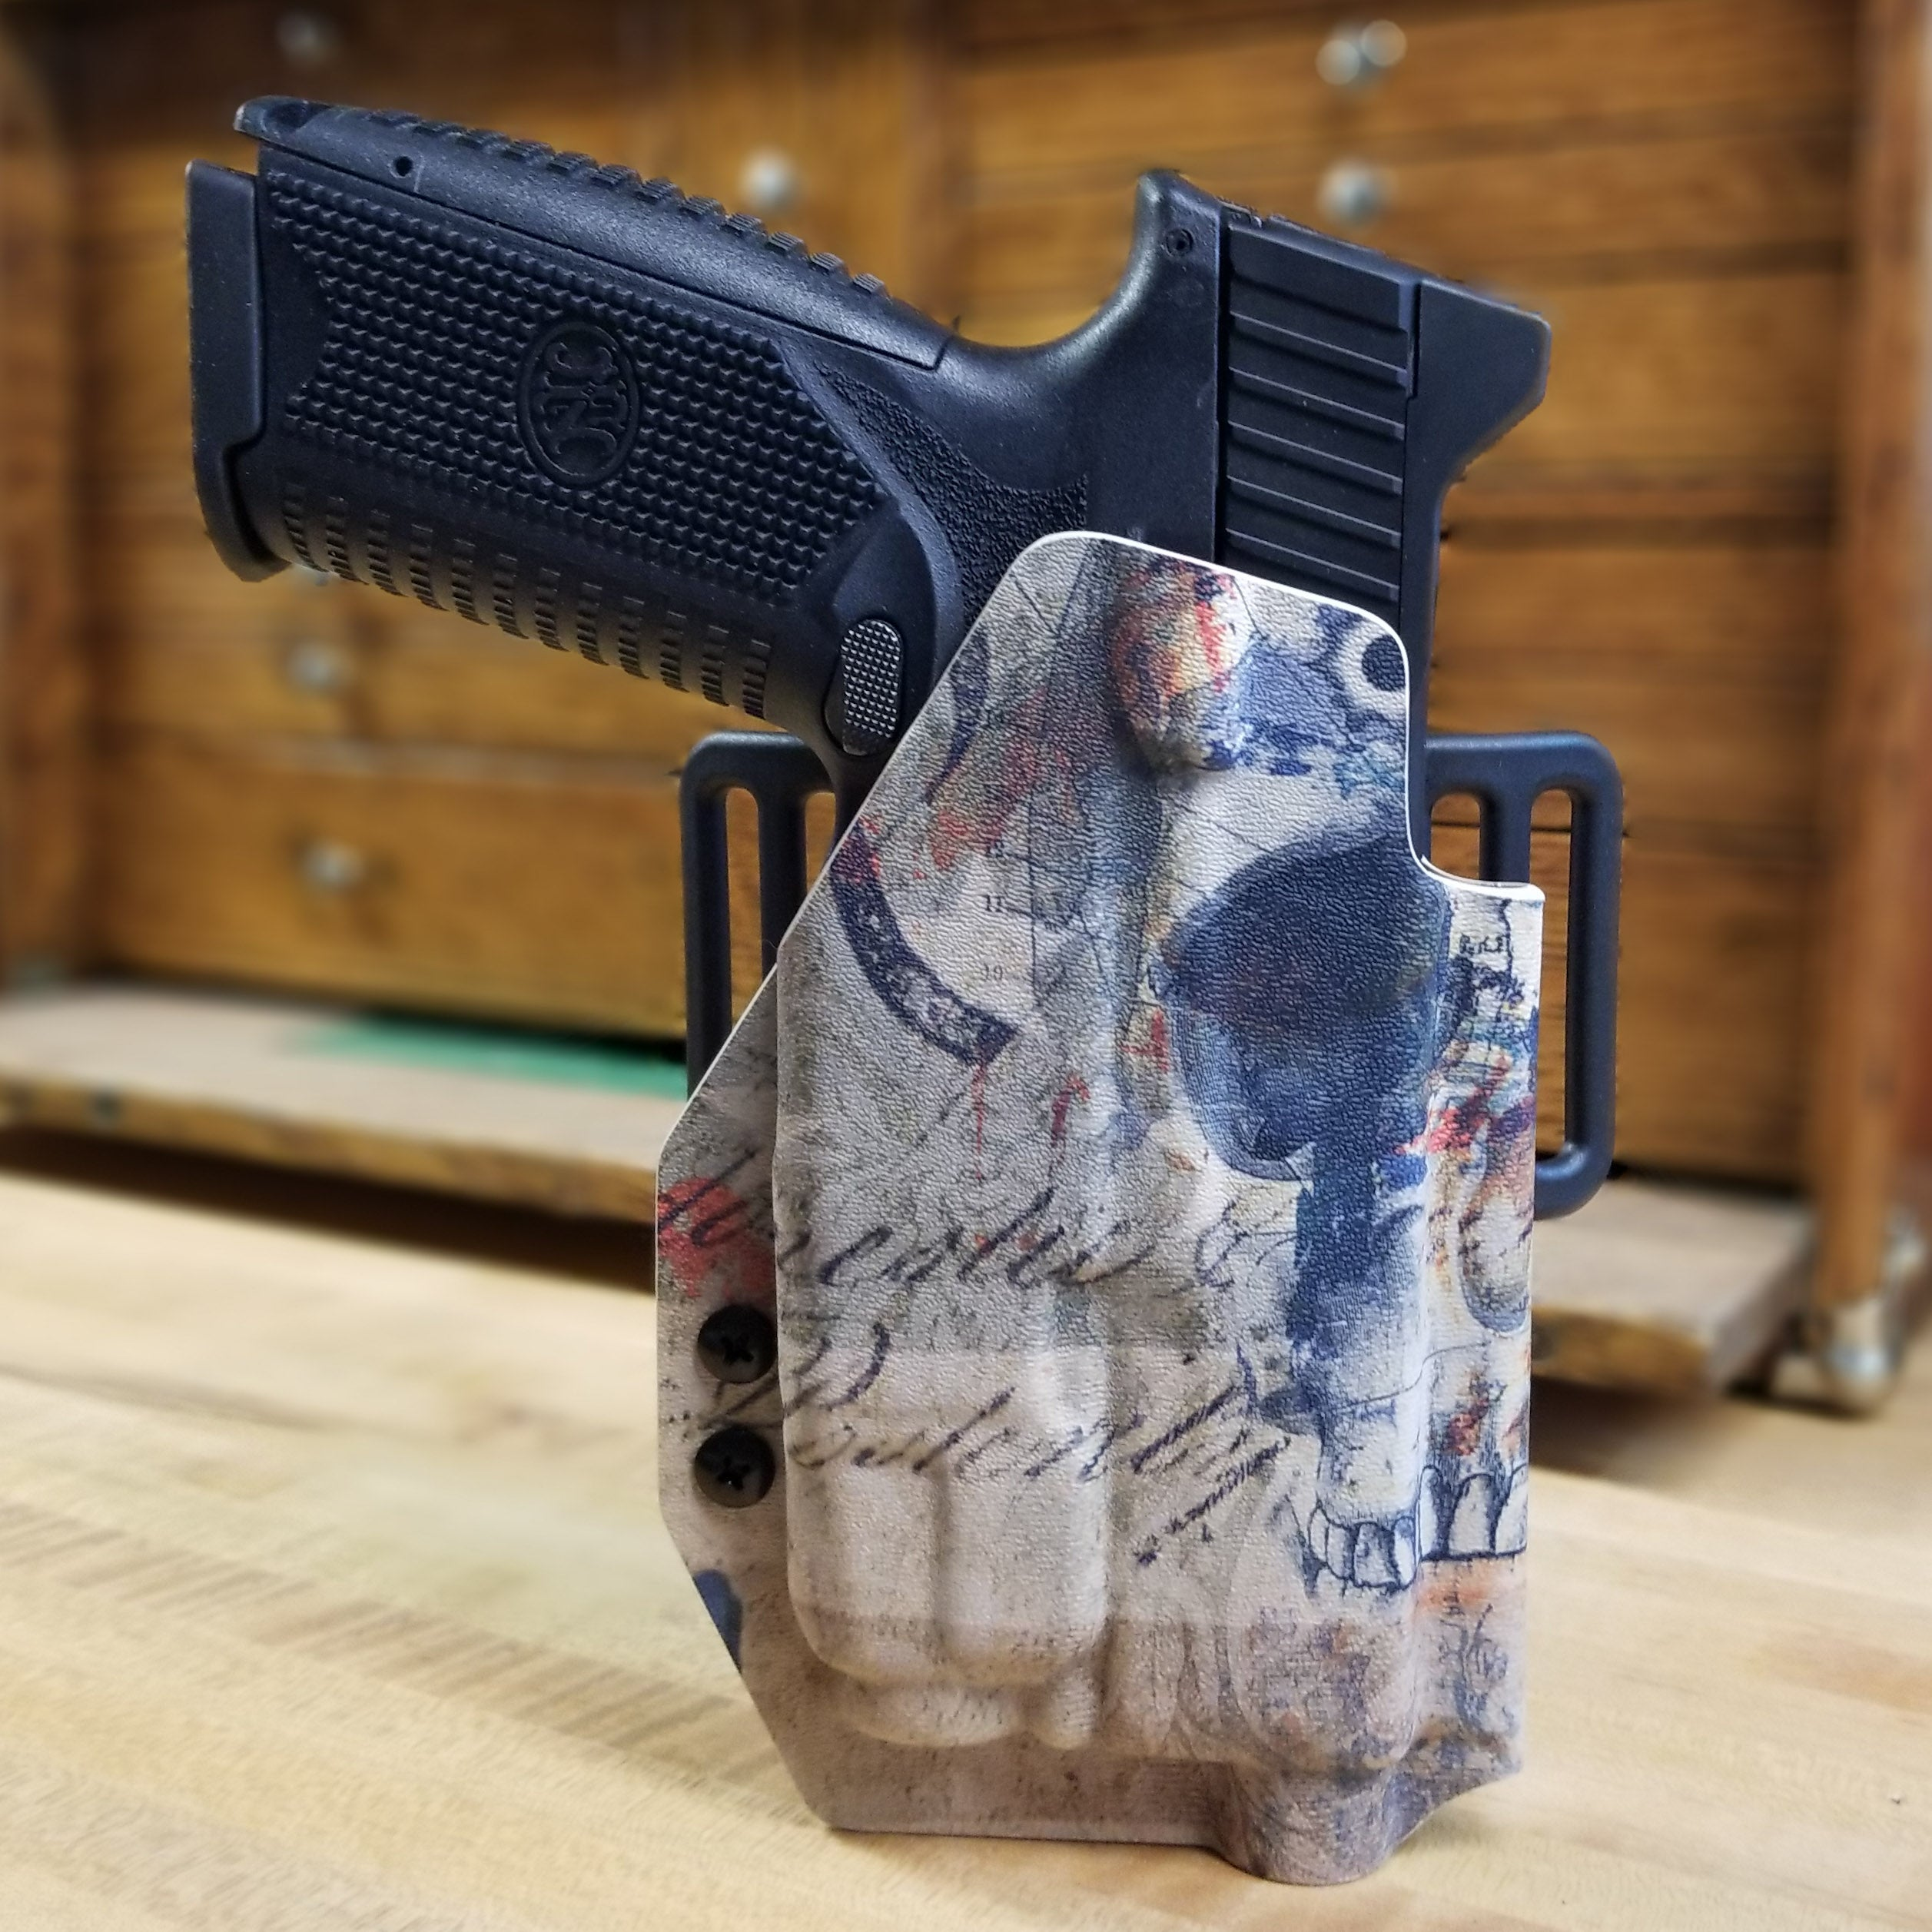 FN 509 Tactical with TLR-7 OWB Holster